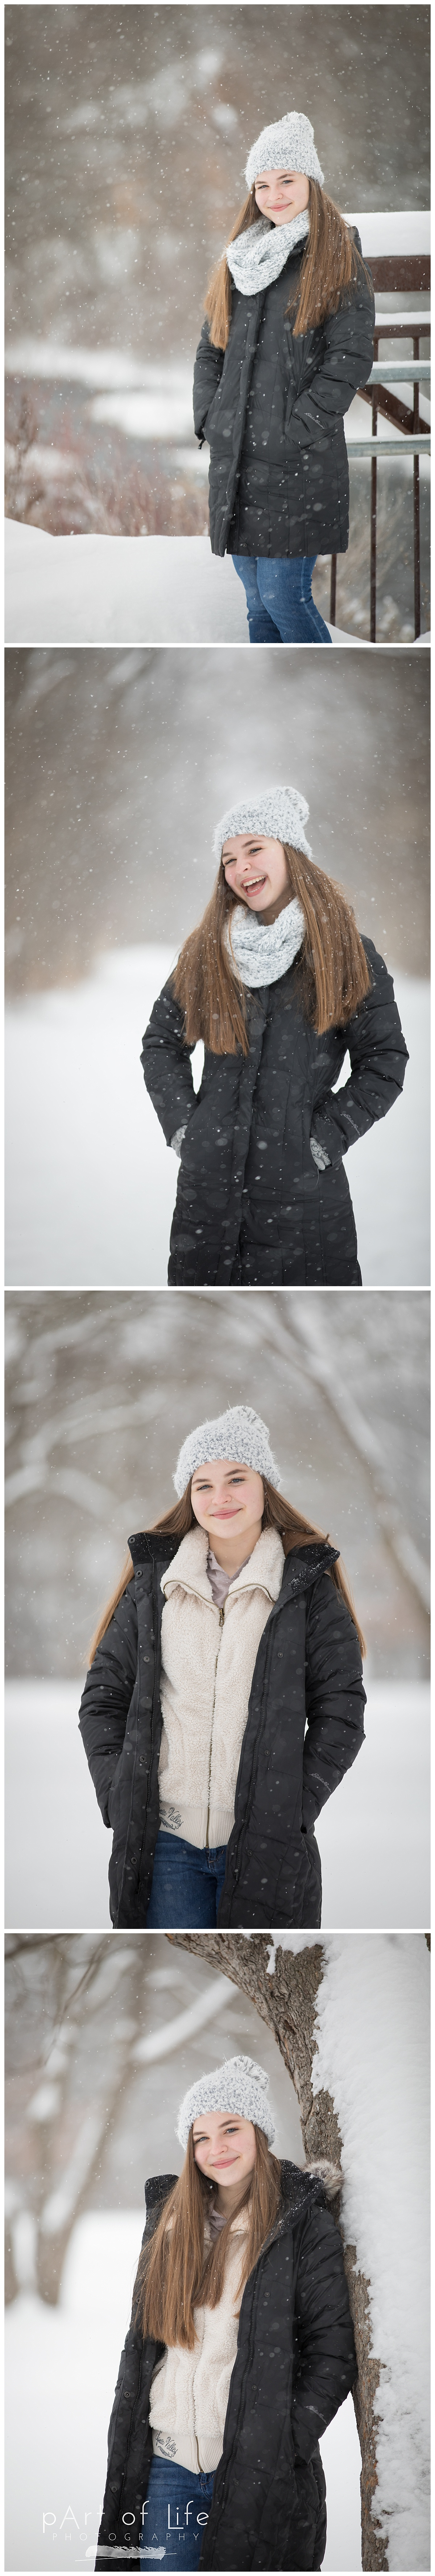 Rochester Park Teen Snow Photo Session